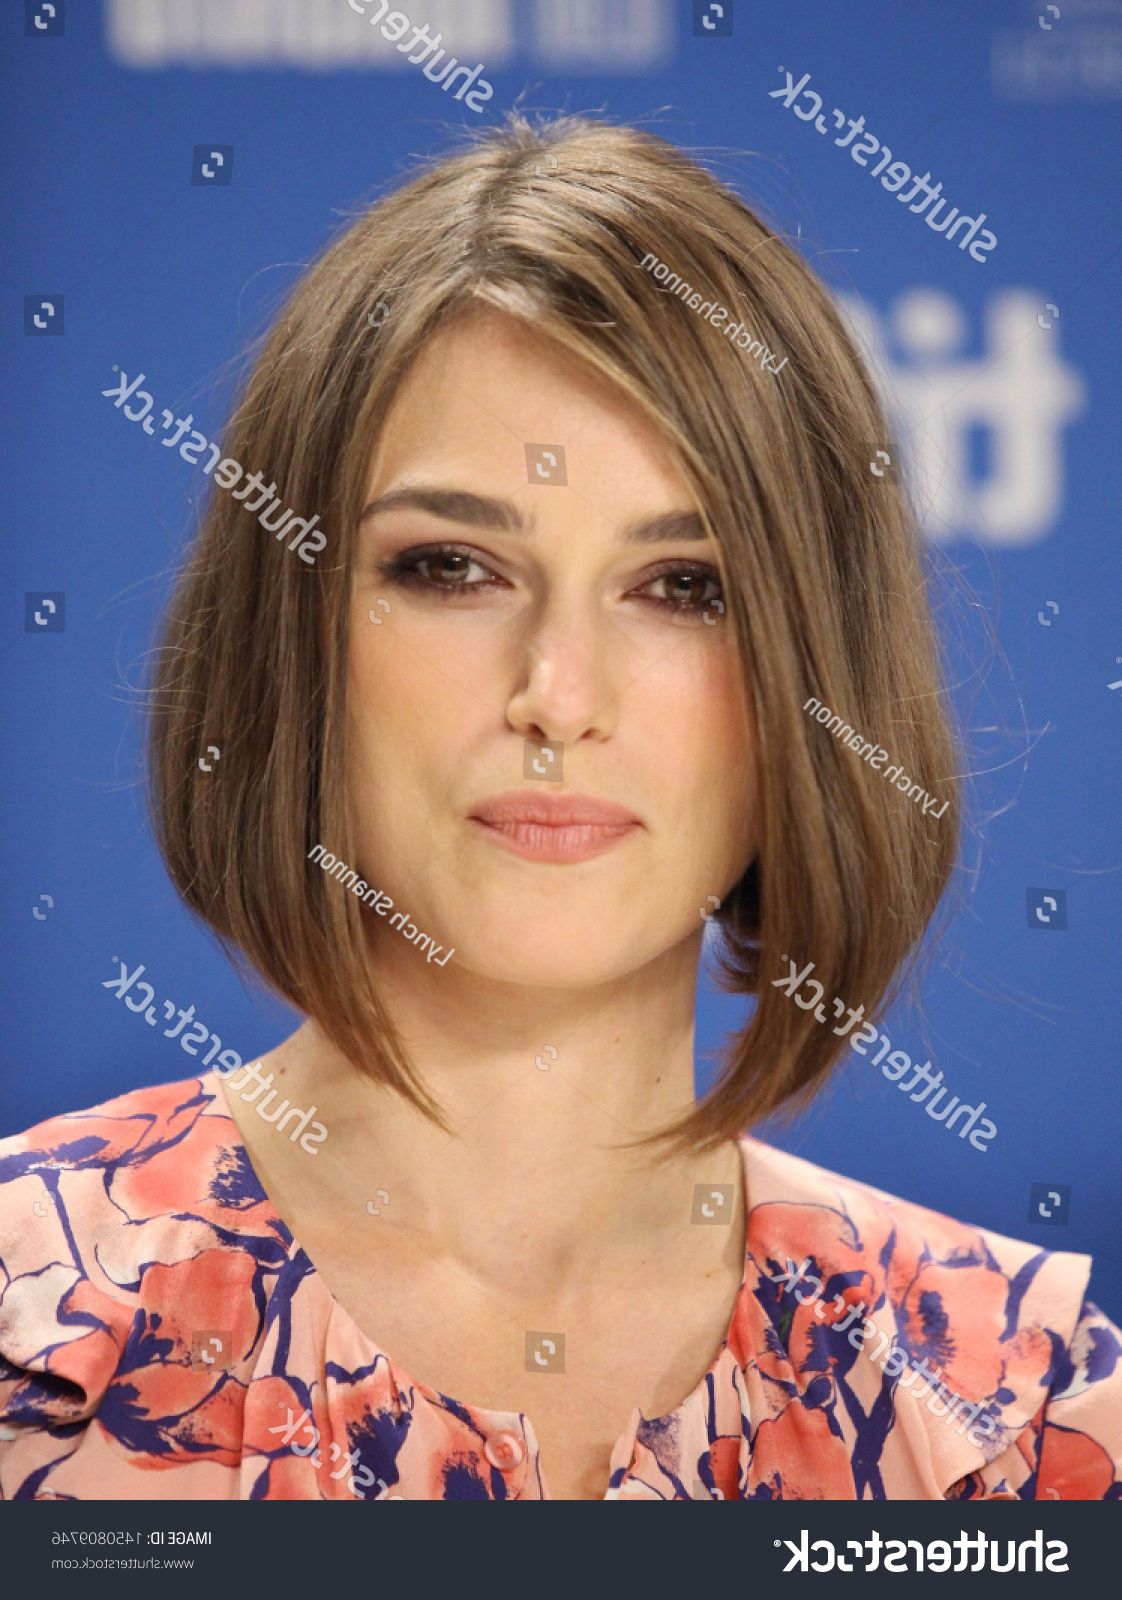 Most Recently Released Blunt Bob Hairstyles In Los Angelescaliforniausa 06112019 Women Blunt Bob Stock (View 12 of 20)